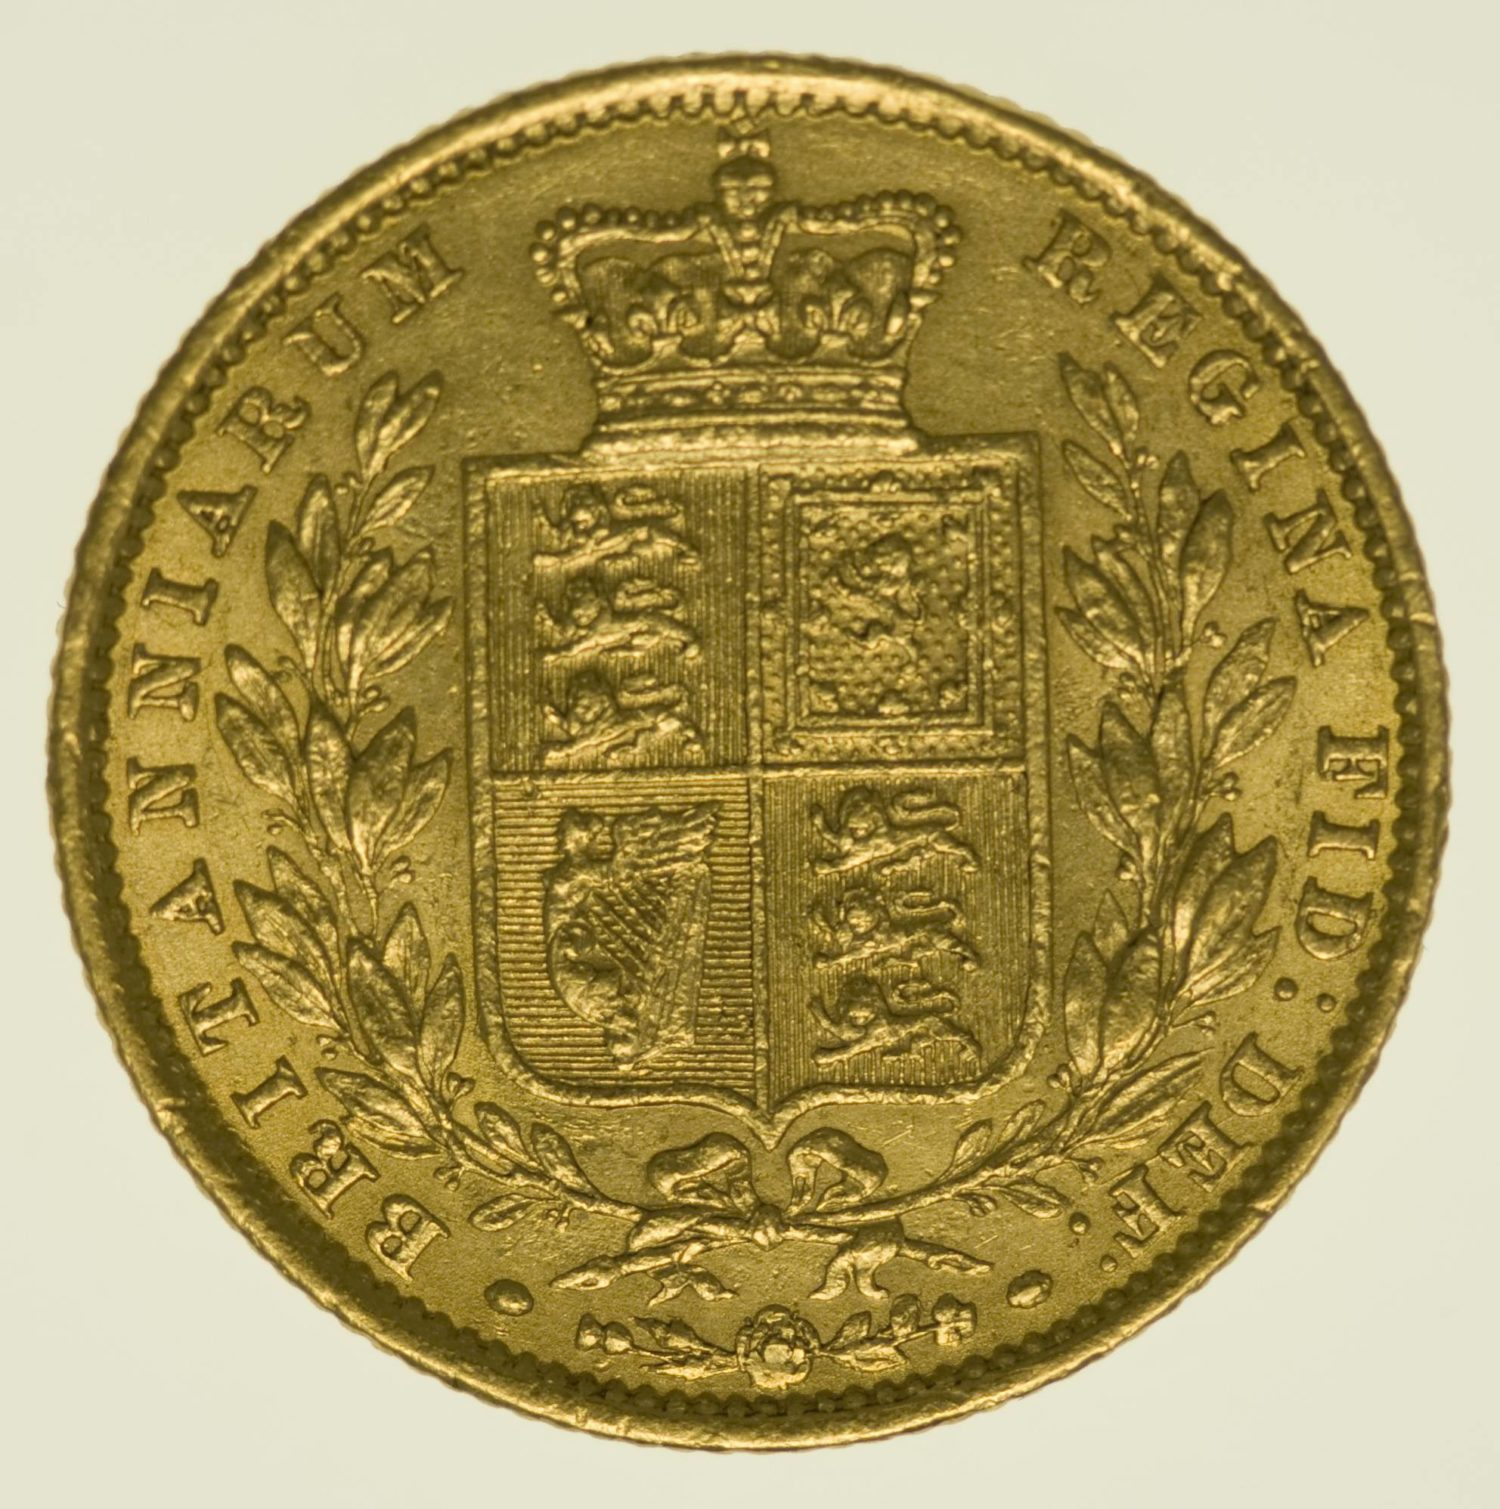 Grossbritannien Victoria Sovereign 1861 Gold 7,32 Gramm fein RAR